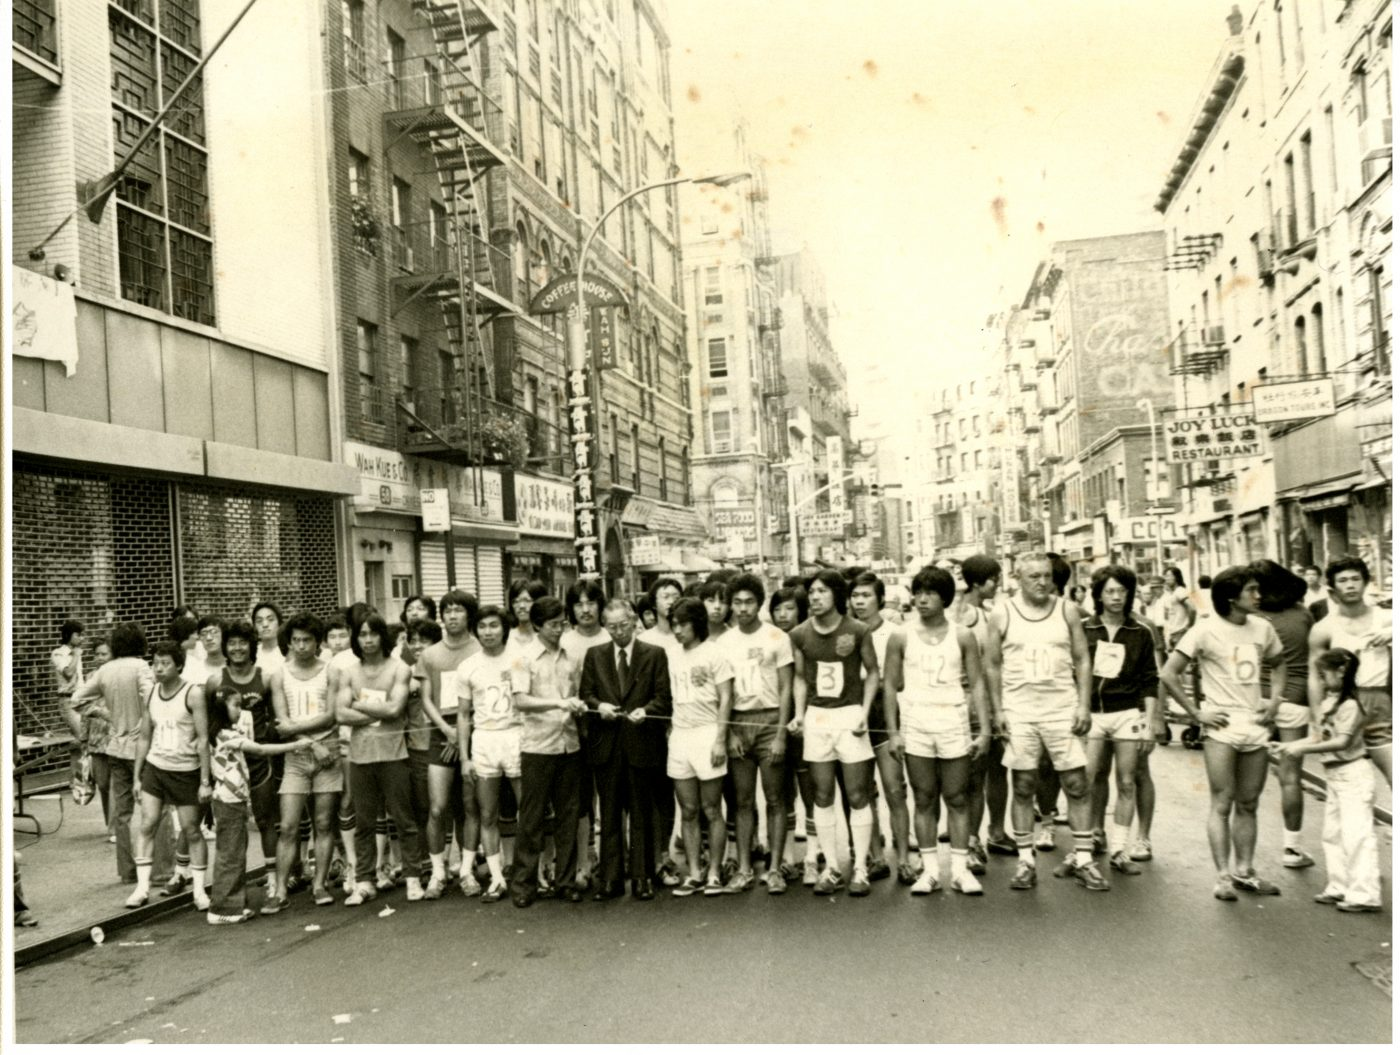 02 April 2019 Posted. New York Chinatown Mini-Marathon, 1977. Photographs taken by Emile Bocian, Museum of Chinese in America (MOCA) Collection. 纽约华埠迷你马拉松赛事,1977年。照片由Emile Bocian(包信)拍摄,美国华人博物馆(MOCA)馆藏